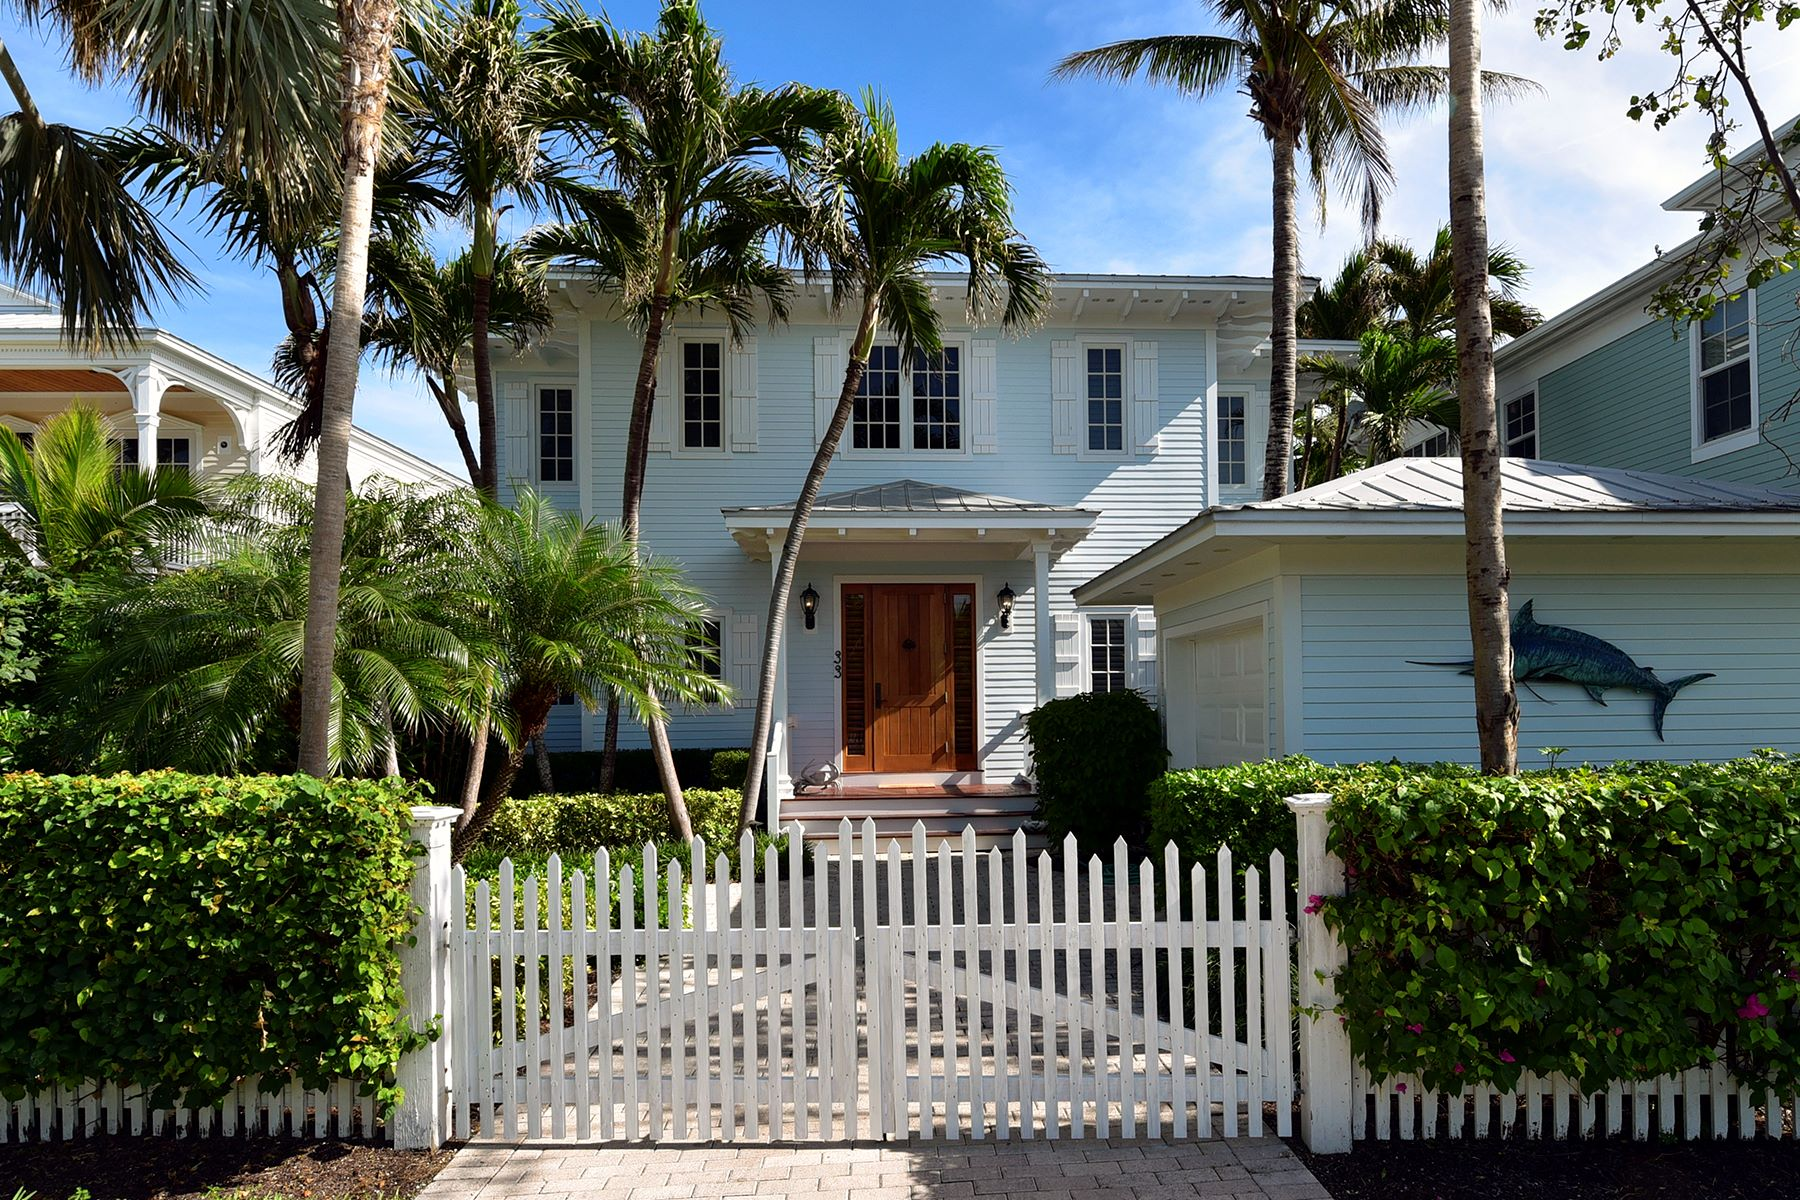 独户住宅 为 销售 在 Waterfront Home on Oversized Lot 33 Sunset Key Drive Key West, 佛罗里达州 33040 美国